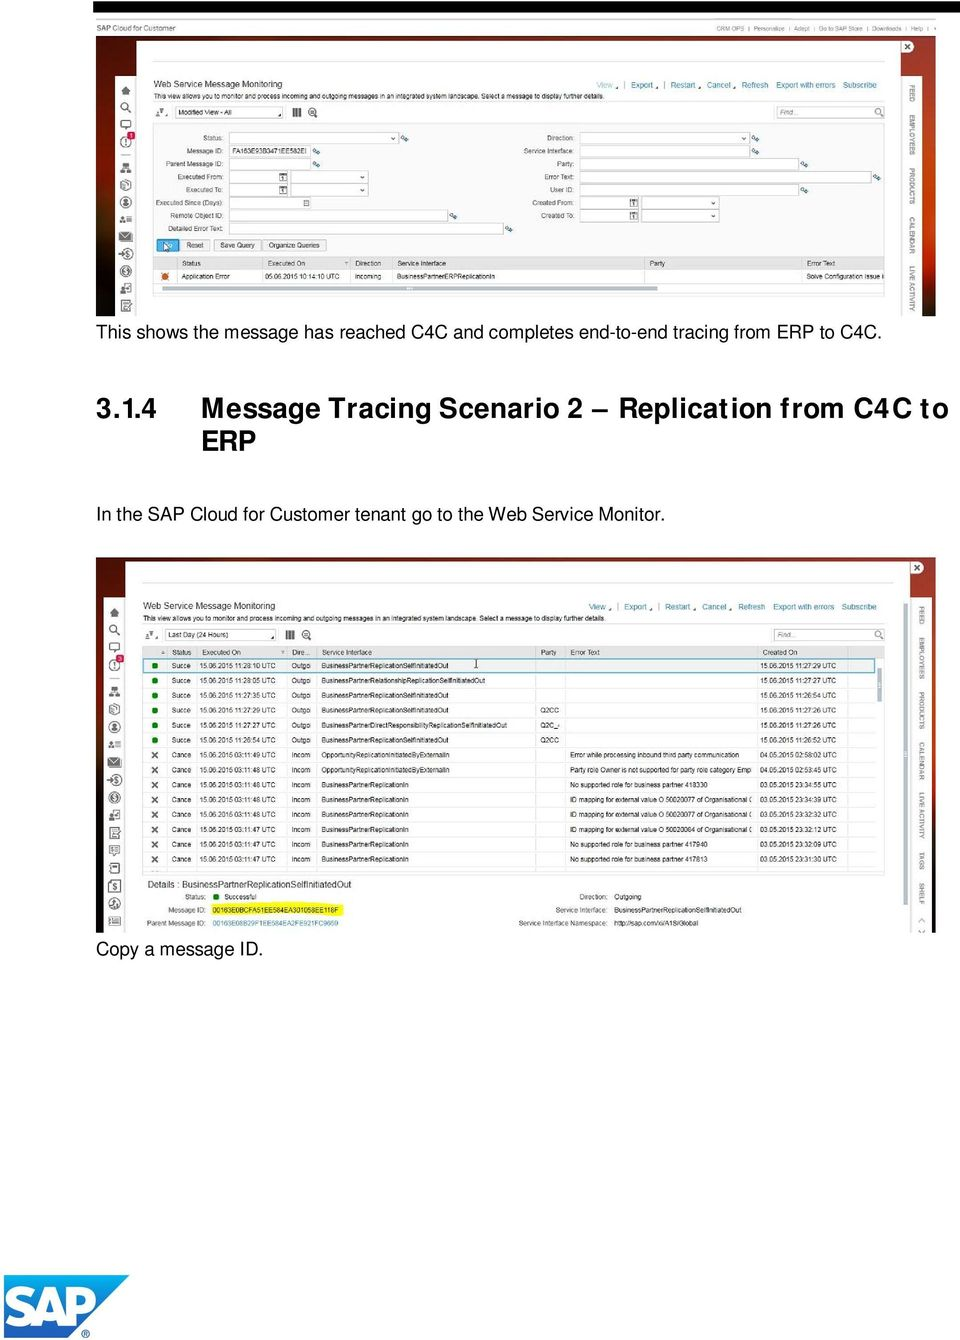 How to Monitor Messages across SAP on-premise and SAP Cloud